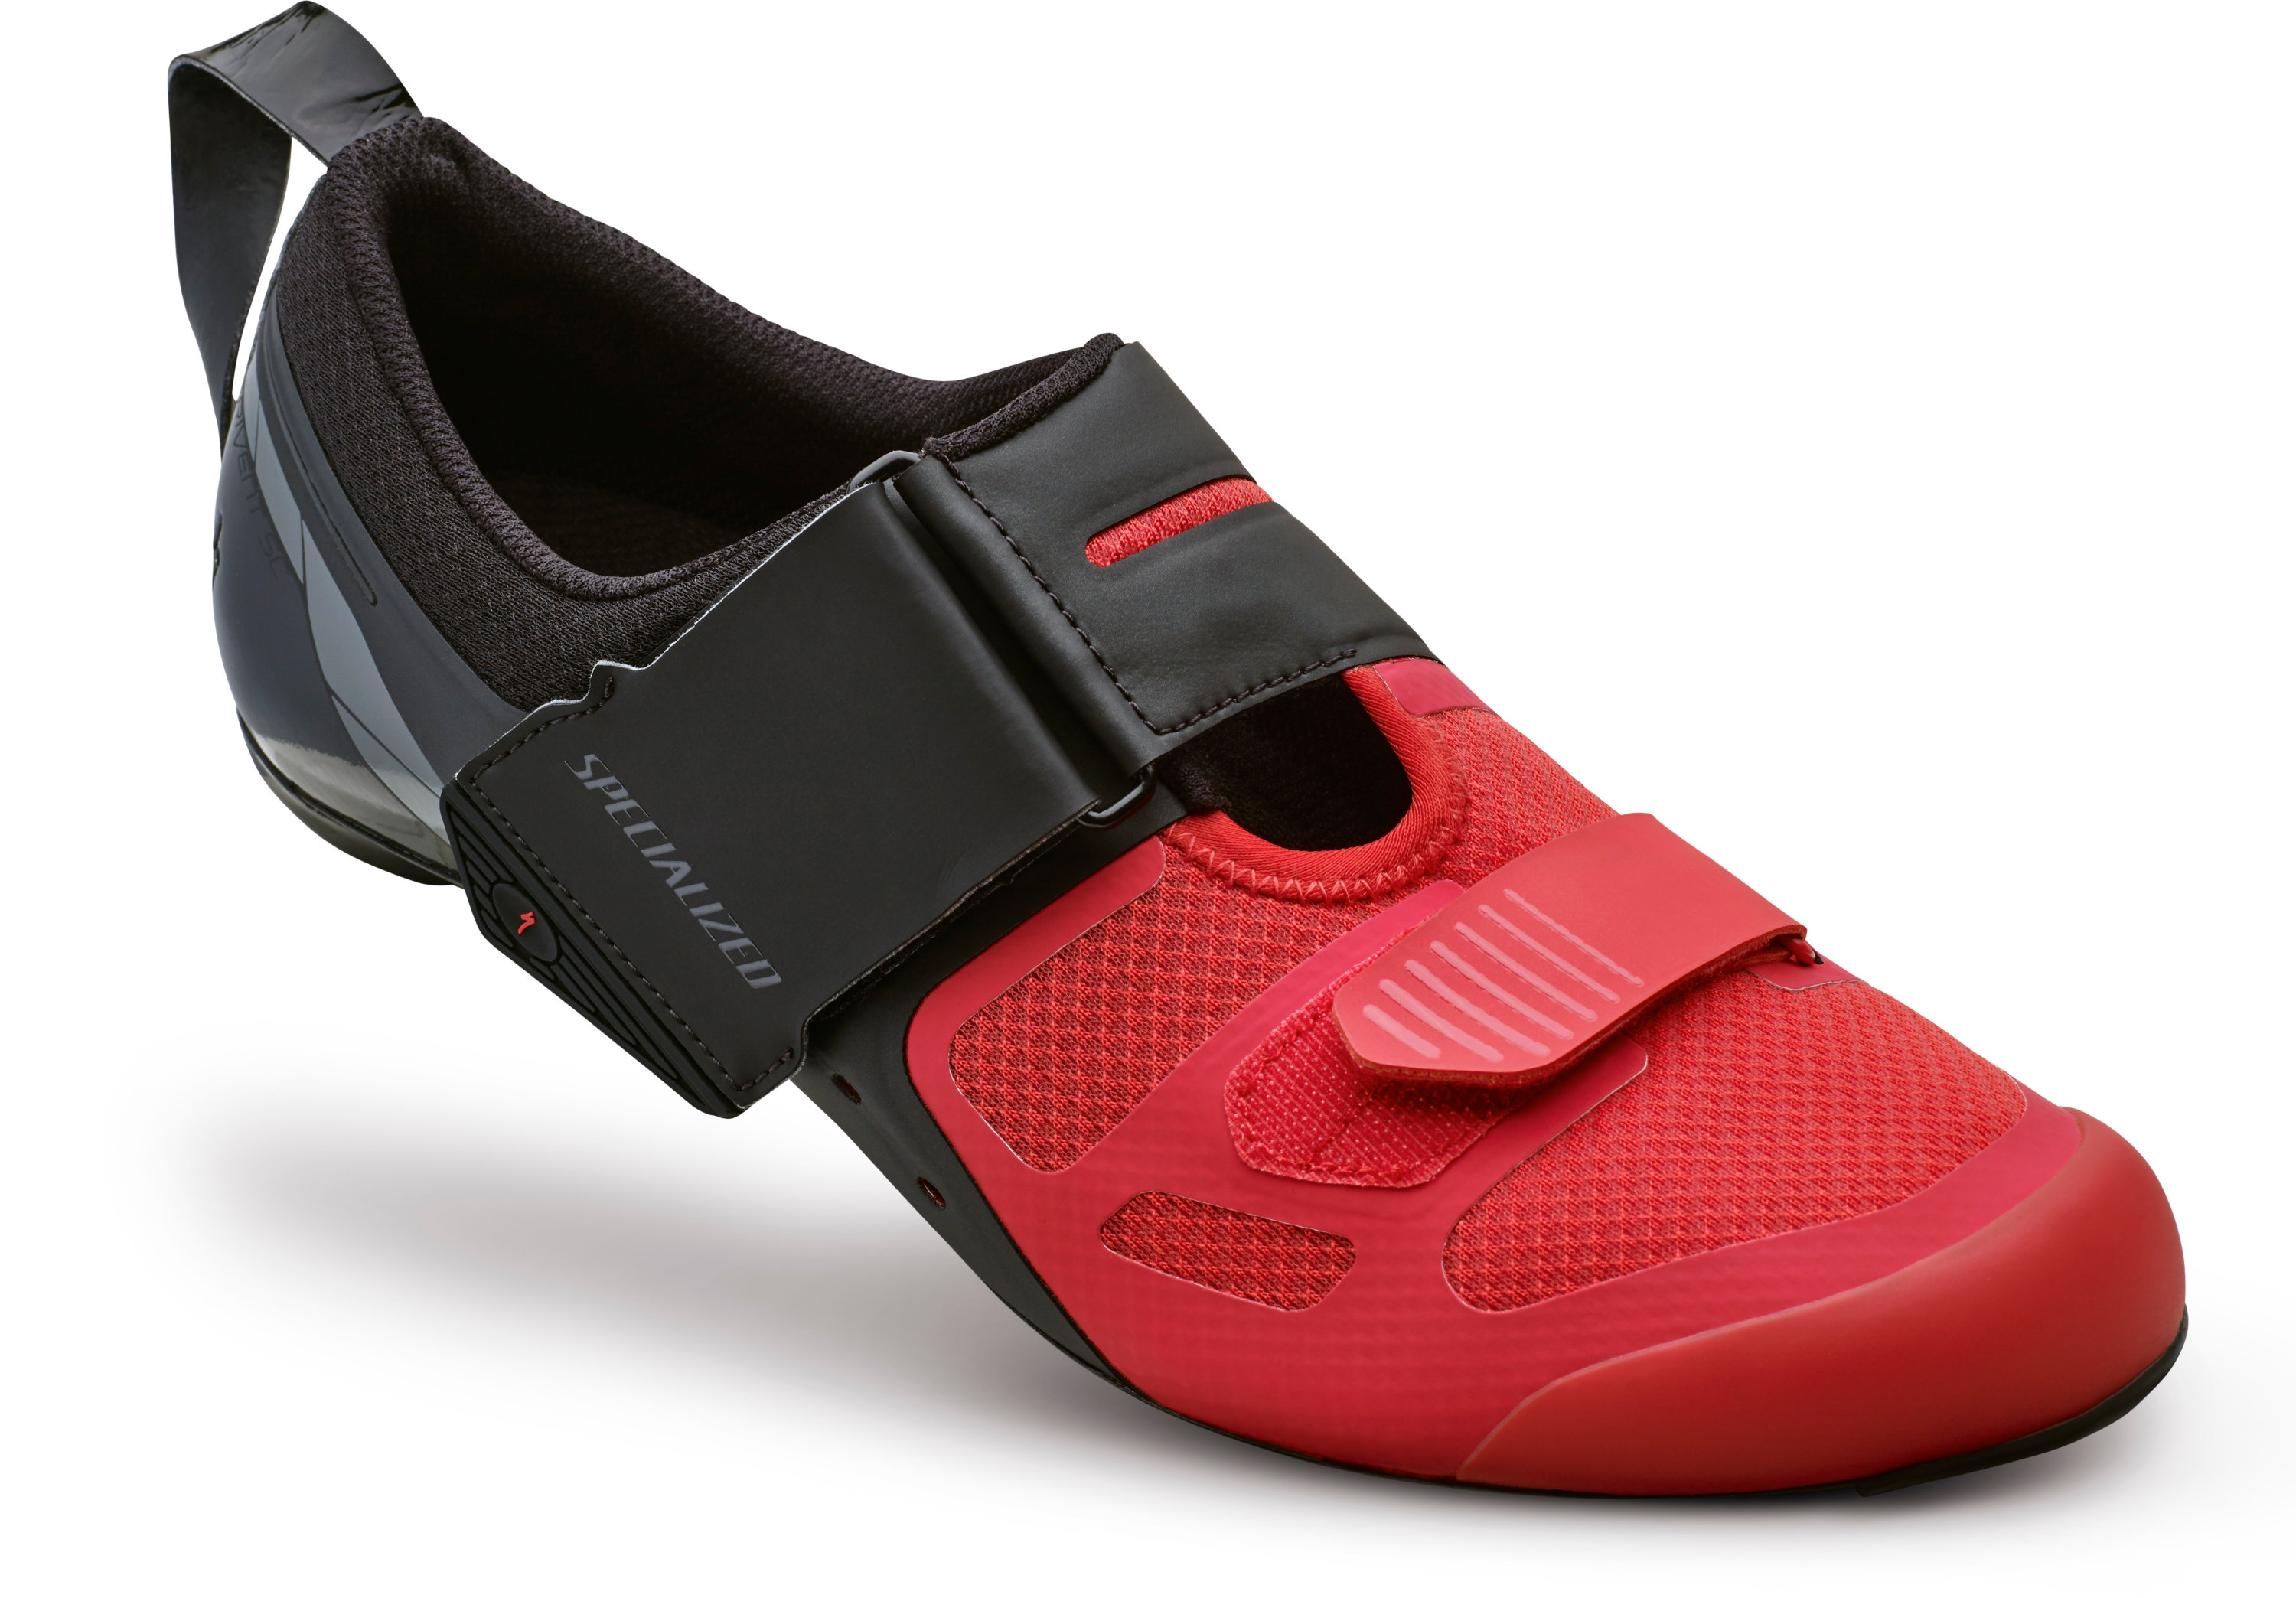 SPECIALIZED TRIVENT SC RD SHOE BLK/RED 44/10.6 - Bike Zone